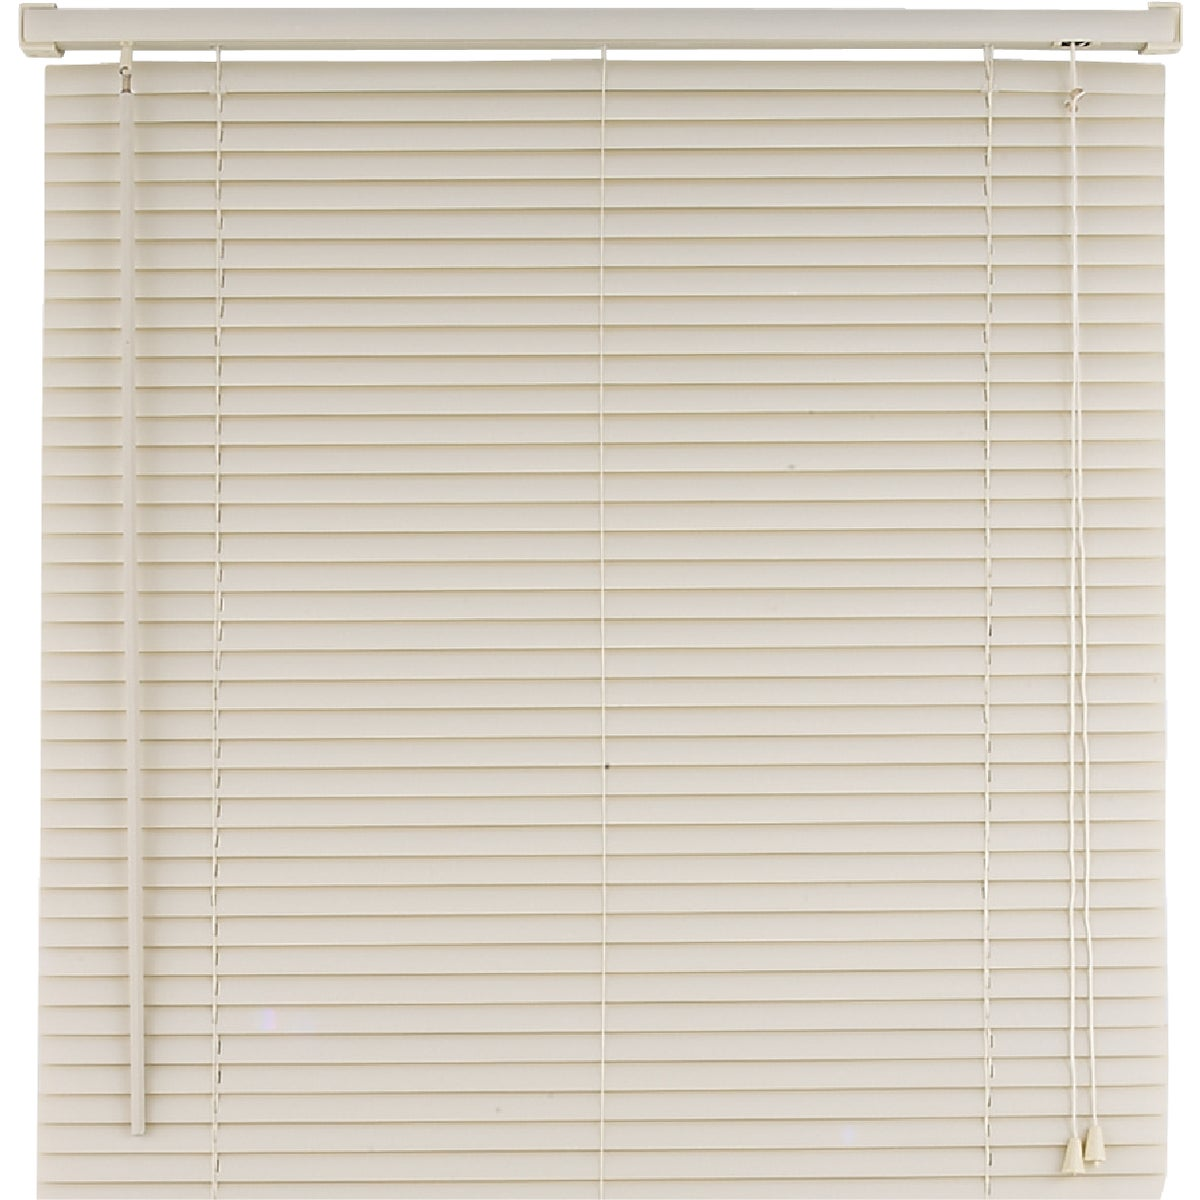 33X64 ALABASTER BLIND - 3364-453 by Lotus Wind Incom